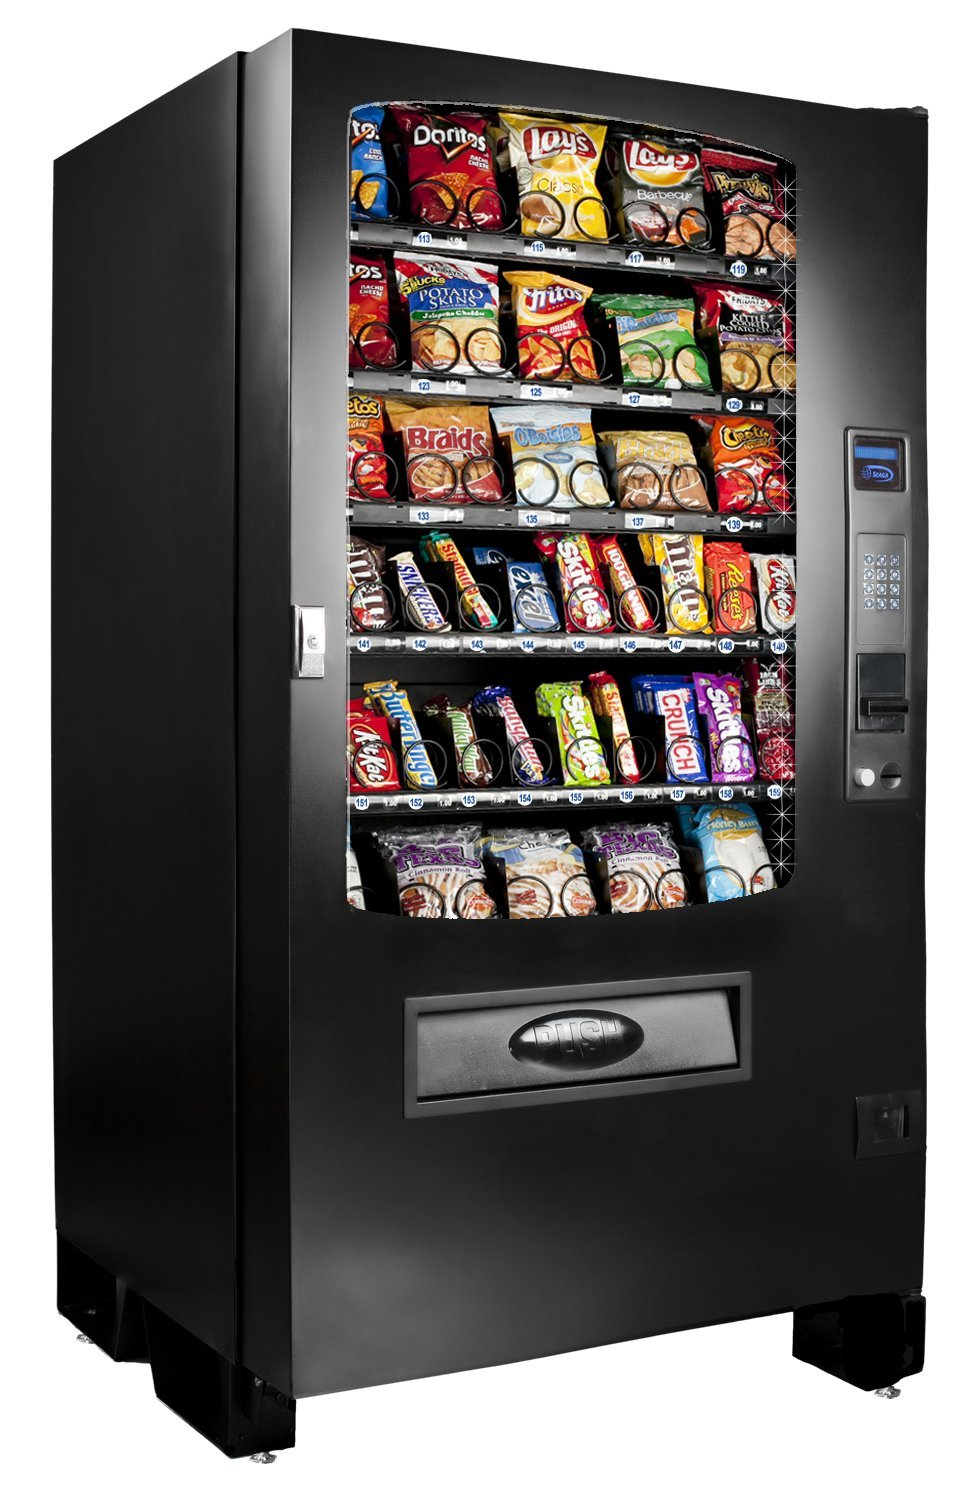 SEAGA Vending Machine For Snacks, Candy, Toys, CD's, DVD's and More, Plug and Play Software This Model Accepts Coin or Cash